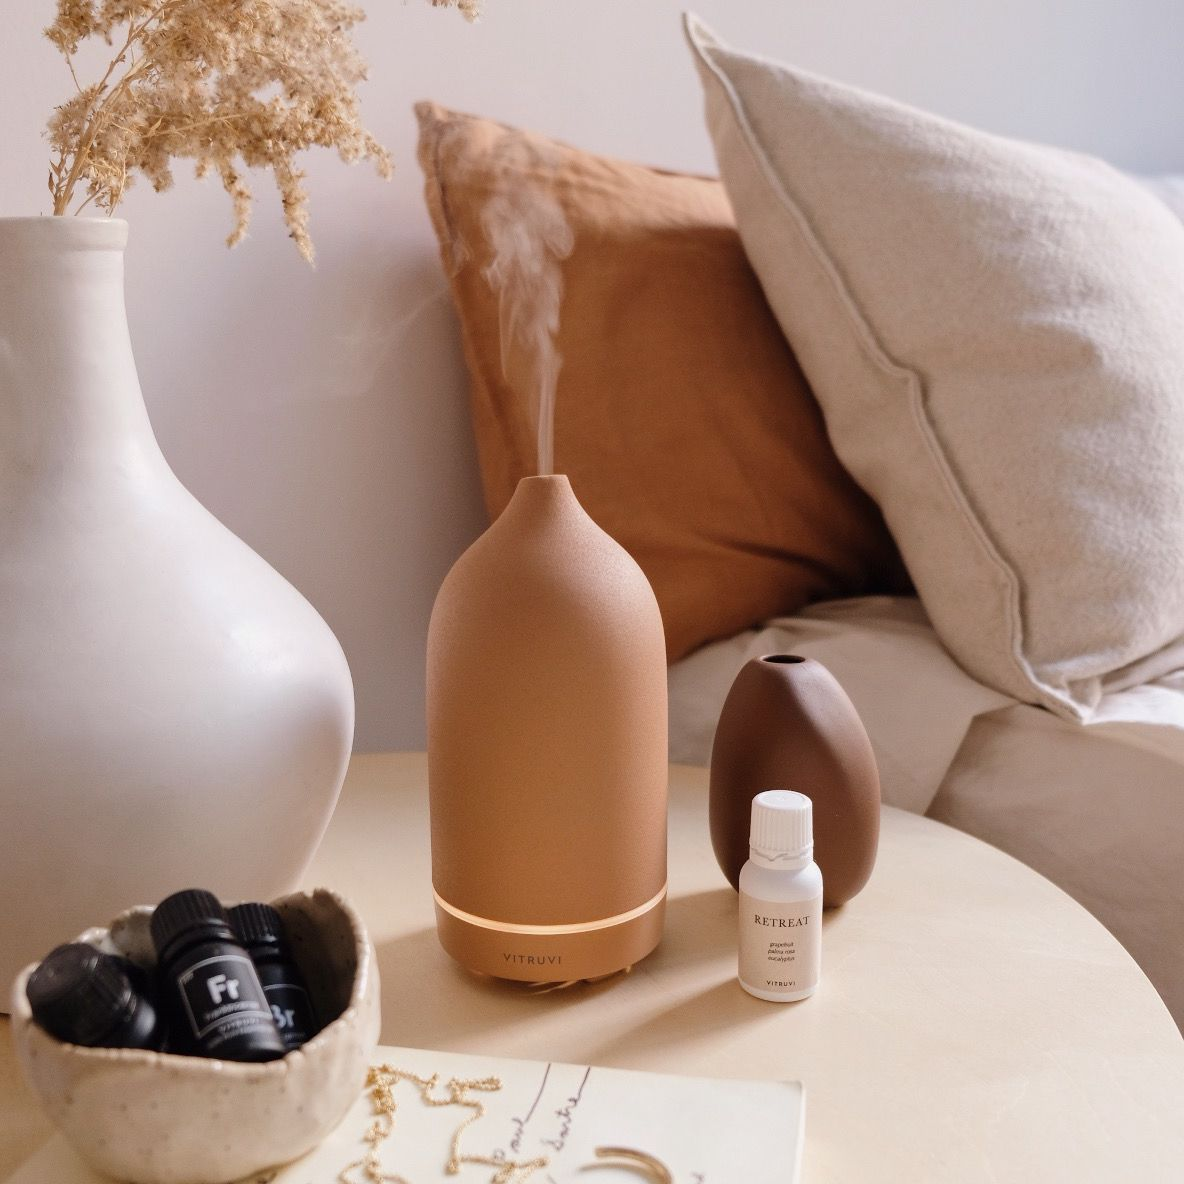 terracotta essential oil diffuser on bedside table